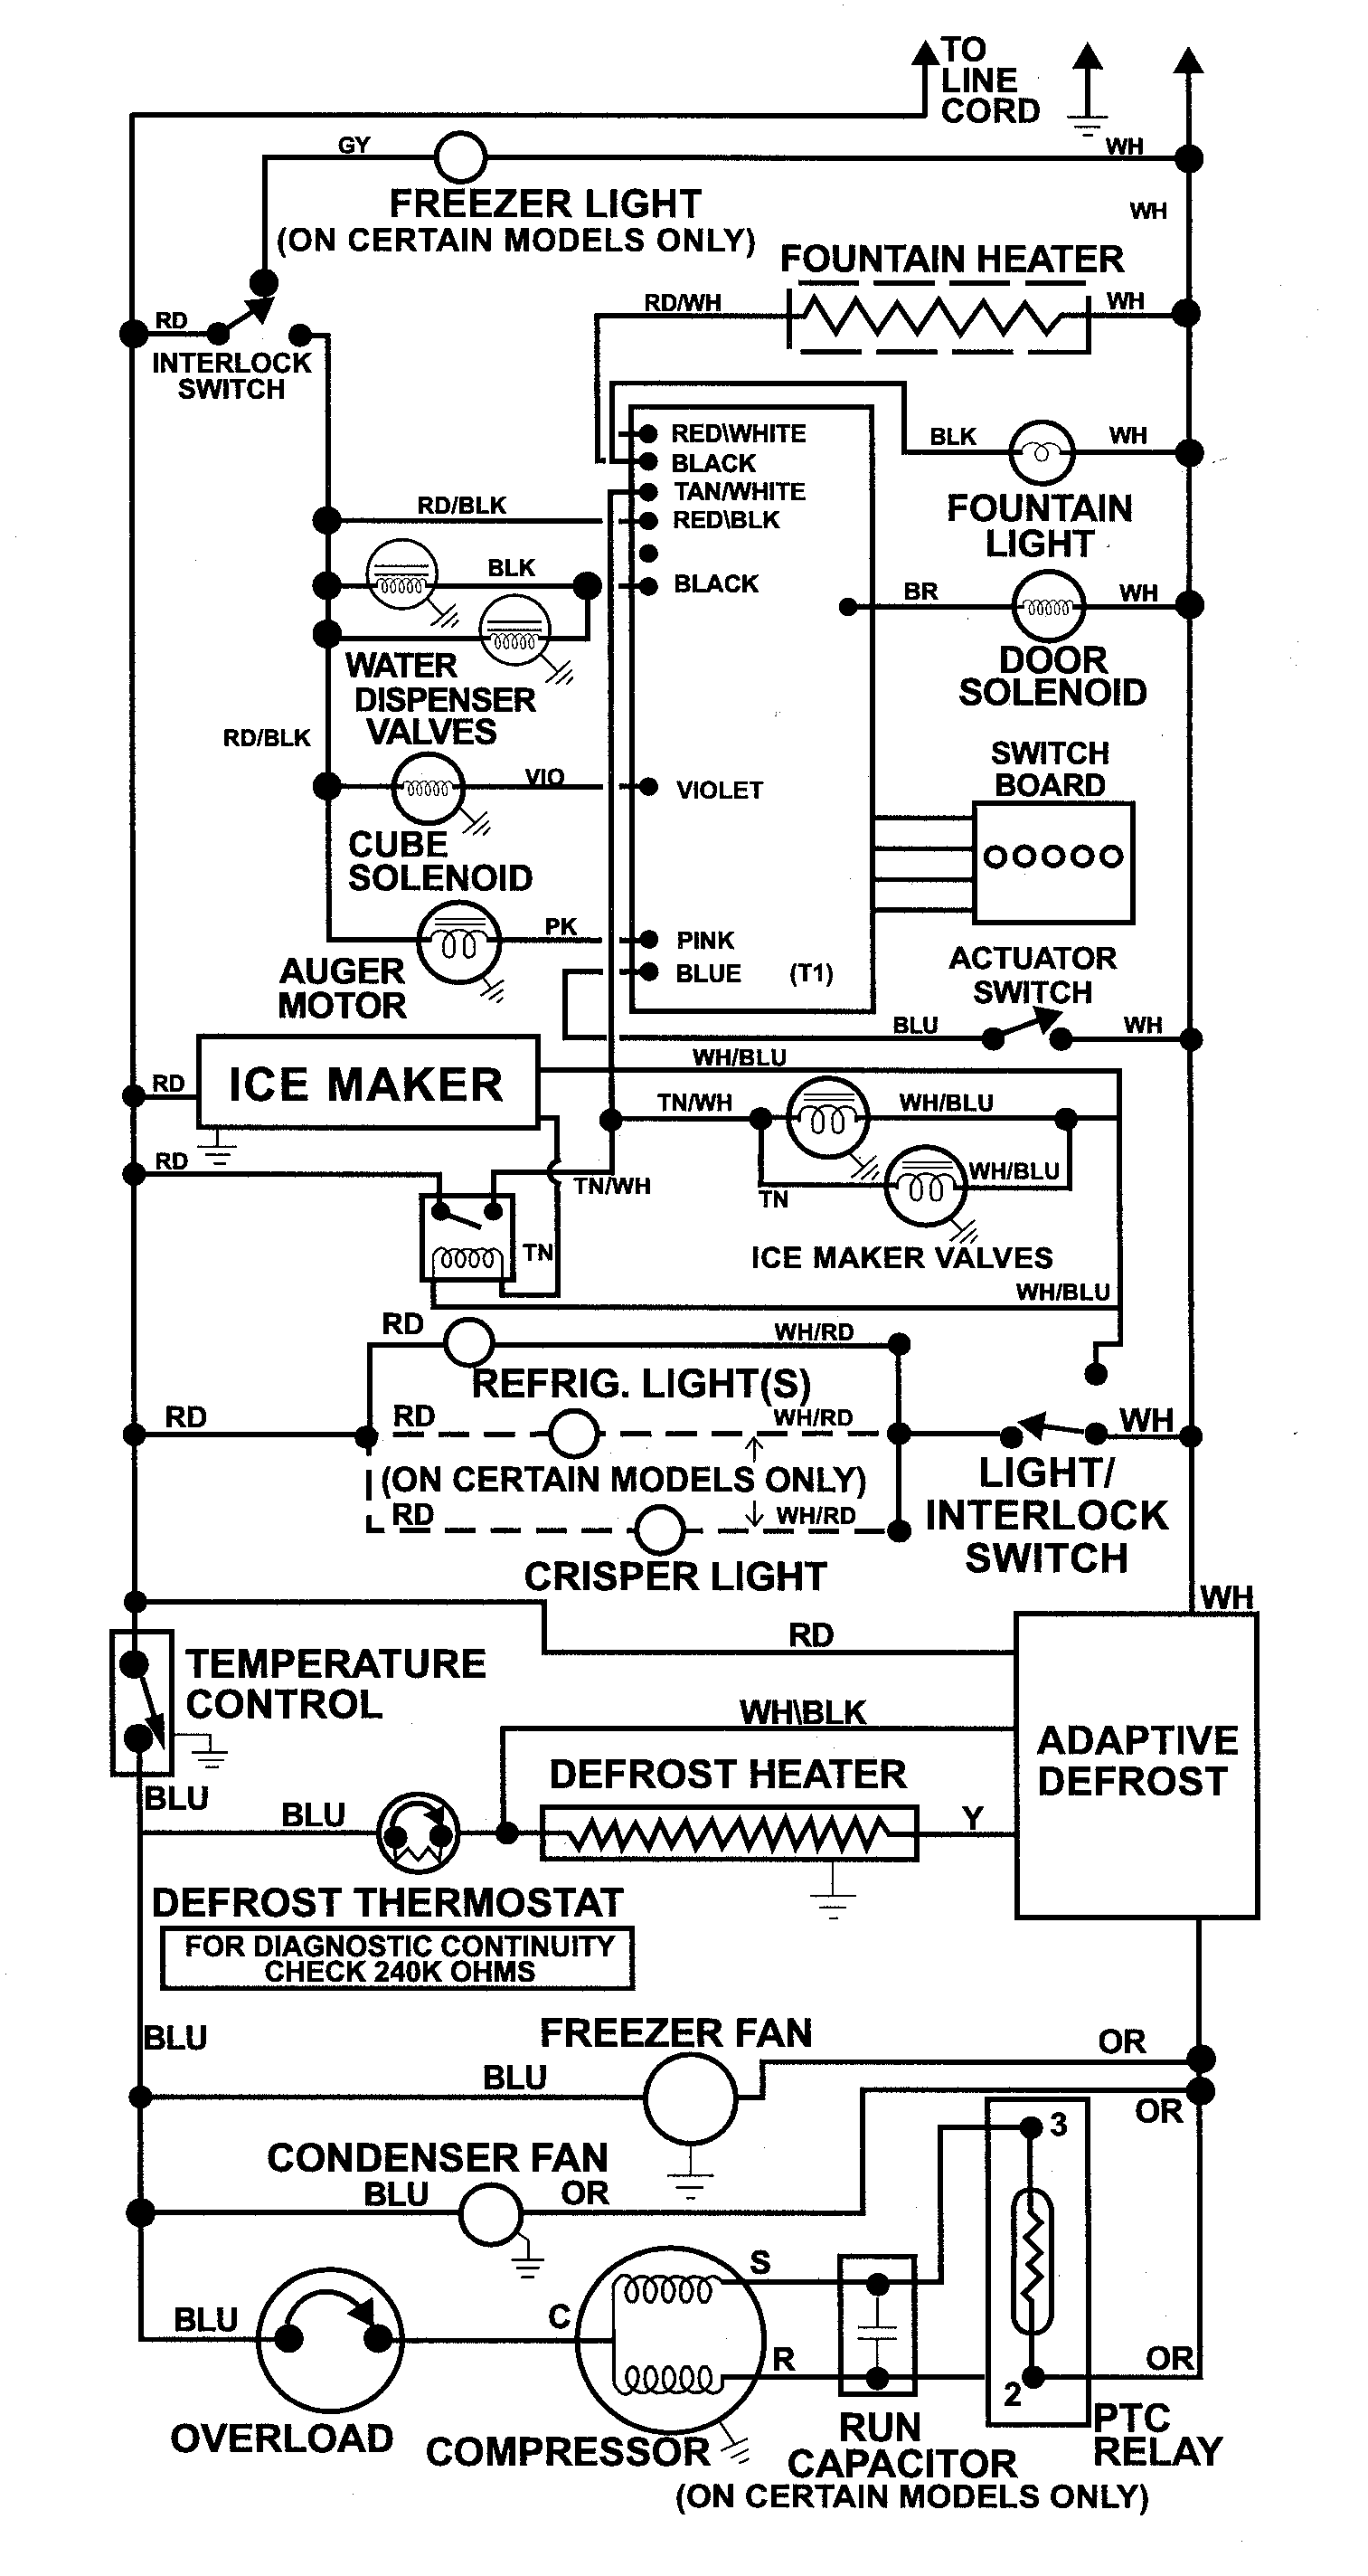 maytag refrigerator schematic wiring diagram for you looking for maytag model msd2656deq side by side refrigerator [ 1513 x 2848 Pixel ]